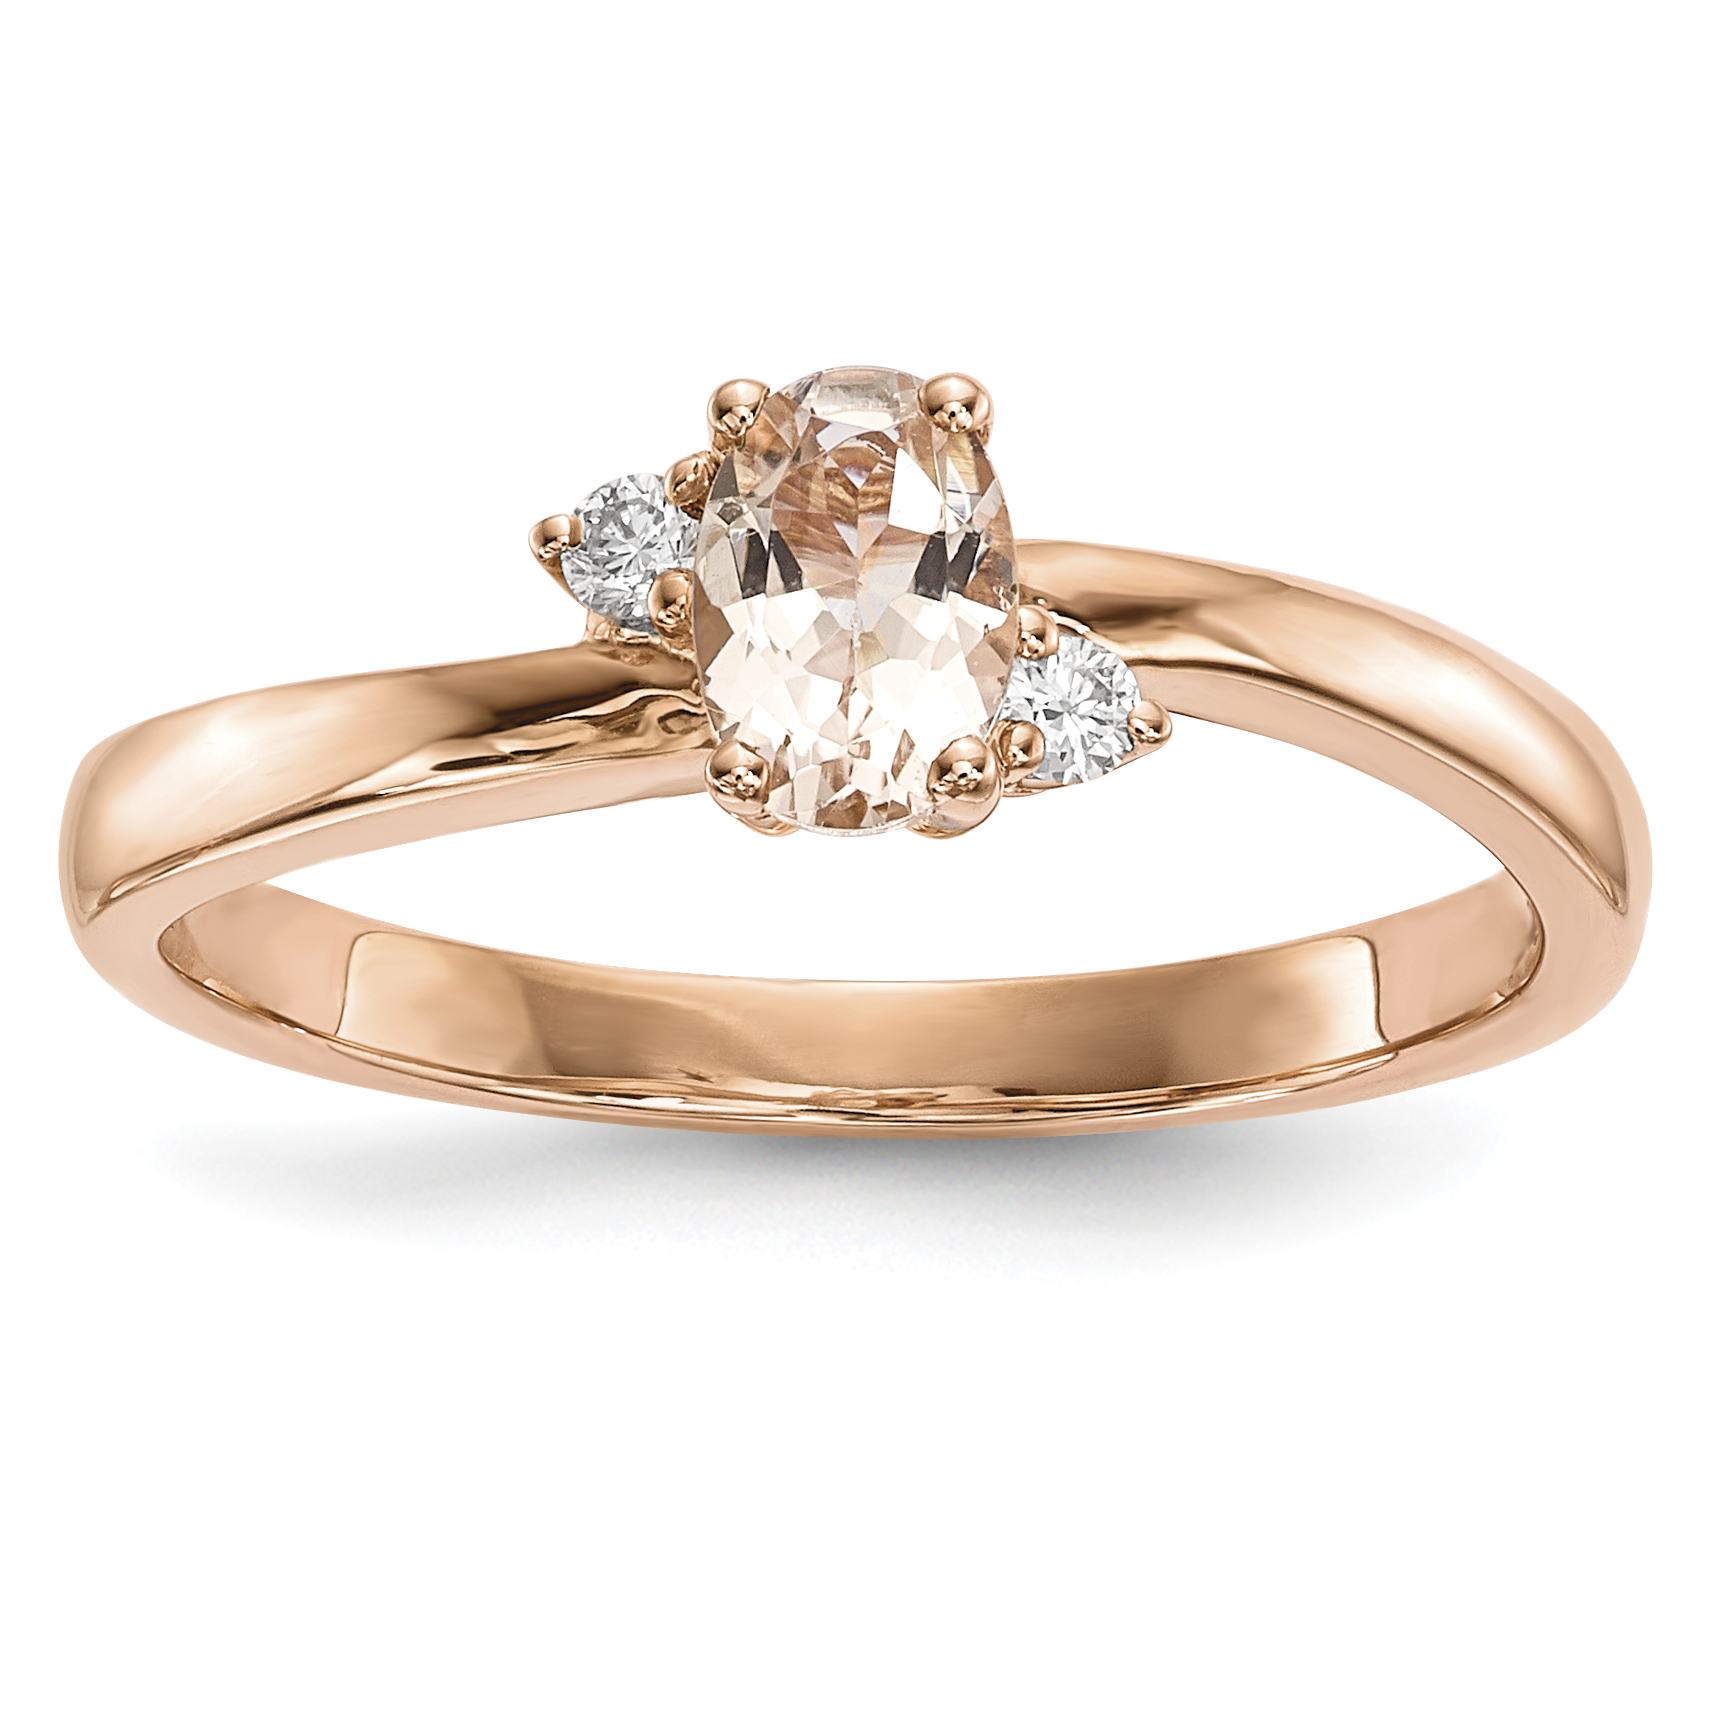 ICE CARATS 14kt Rose Gold Pink Morganite Diamond Band Ring Size 7.00 Gemstone Fine Jewelry Ideal Gifts For Women Gift... by IceCarats Designer Jewelry Gift USA